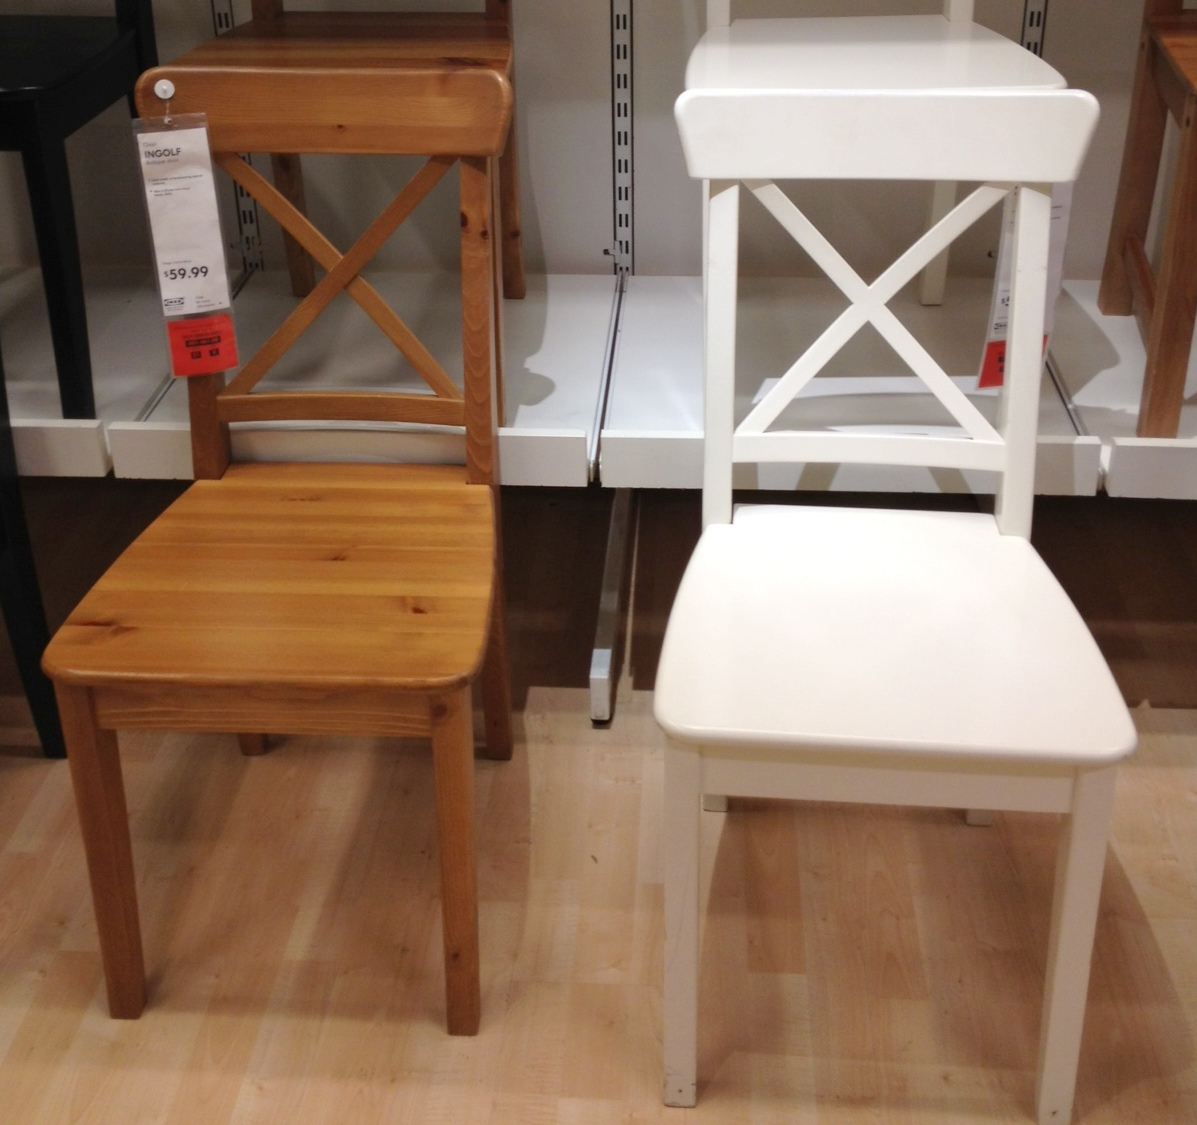 white wooden kitchen chairs sink with cutting board new ikea catalog thelotteryhouse